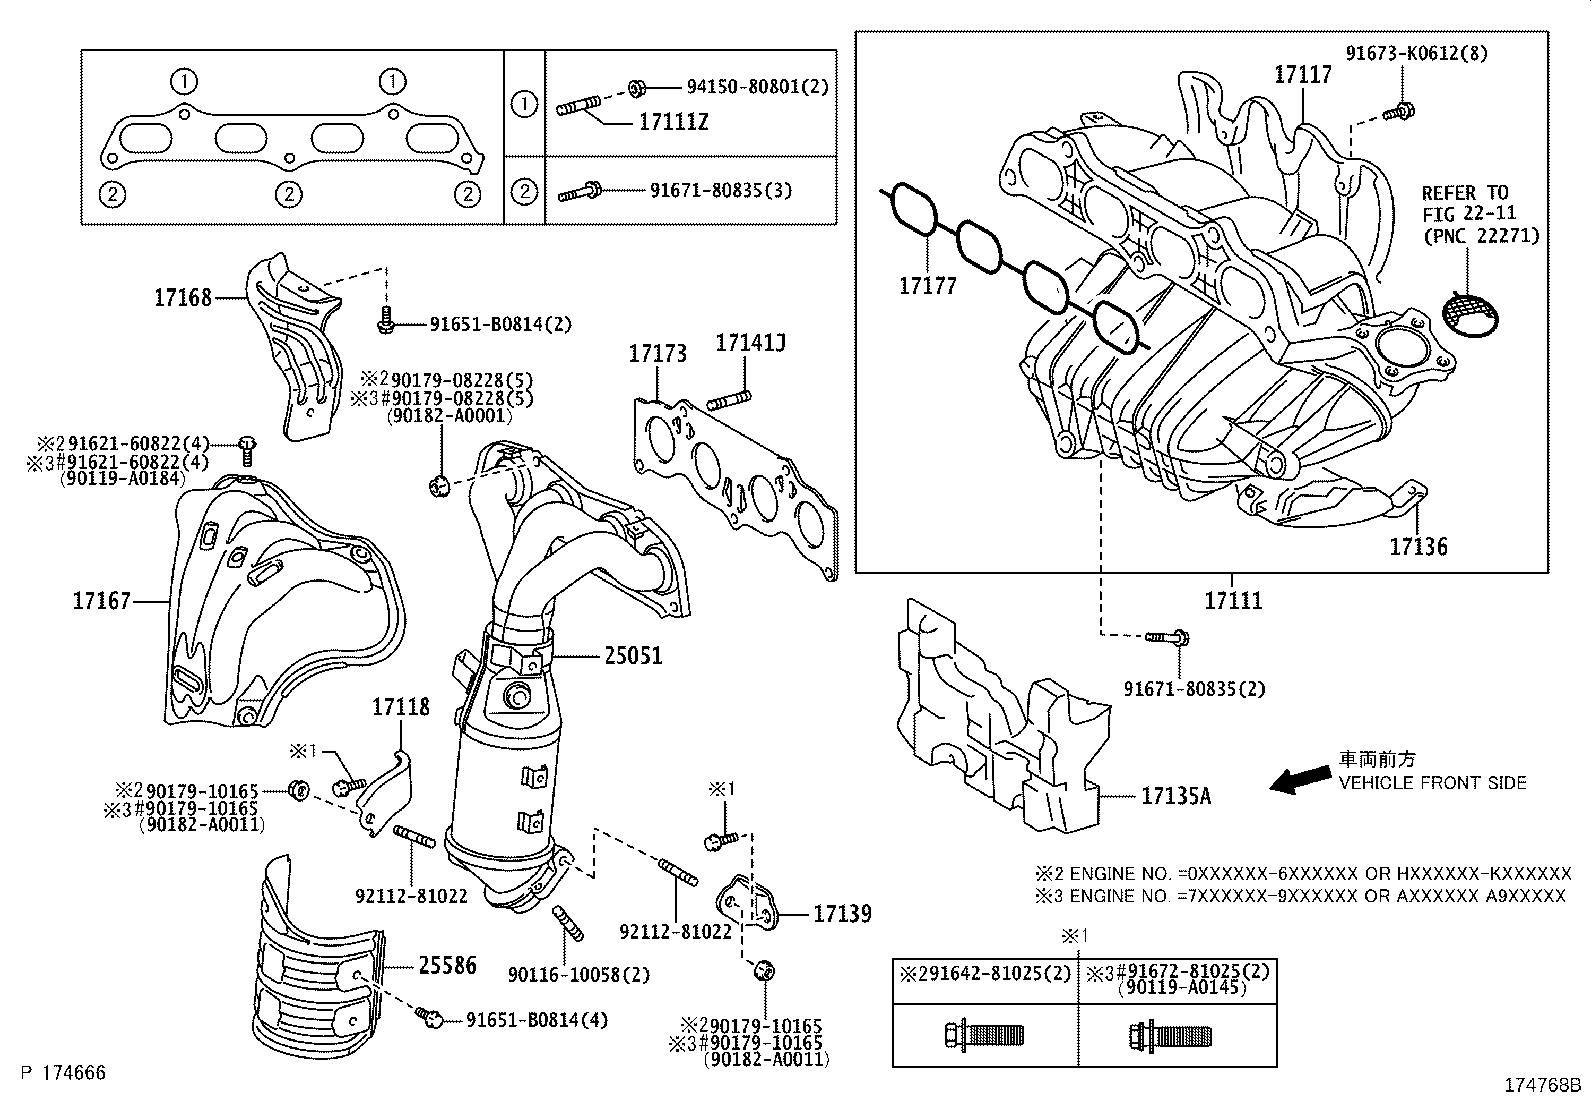 Toyota Camry Catalytic Converter With Integrated Exhaust Manifold